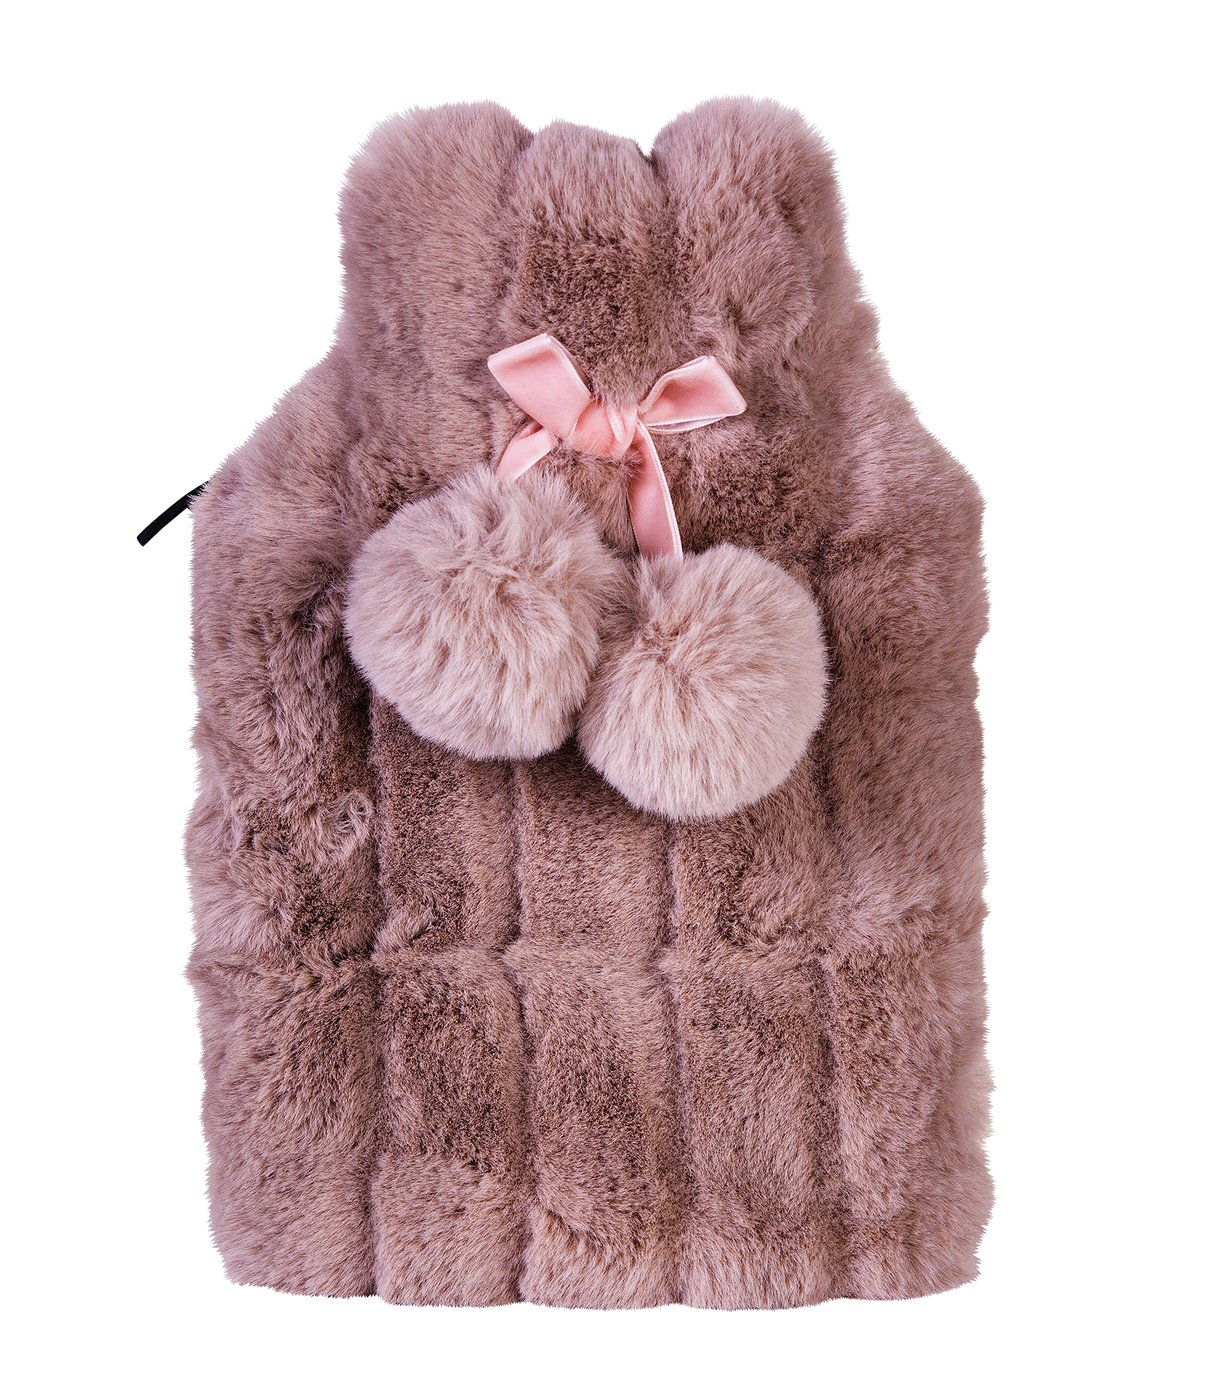 Tranquil Retreat Faux Fur Hot Water Bottle